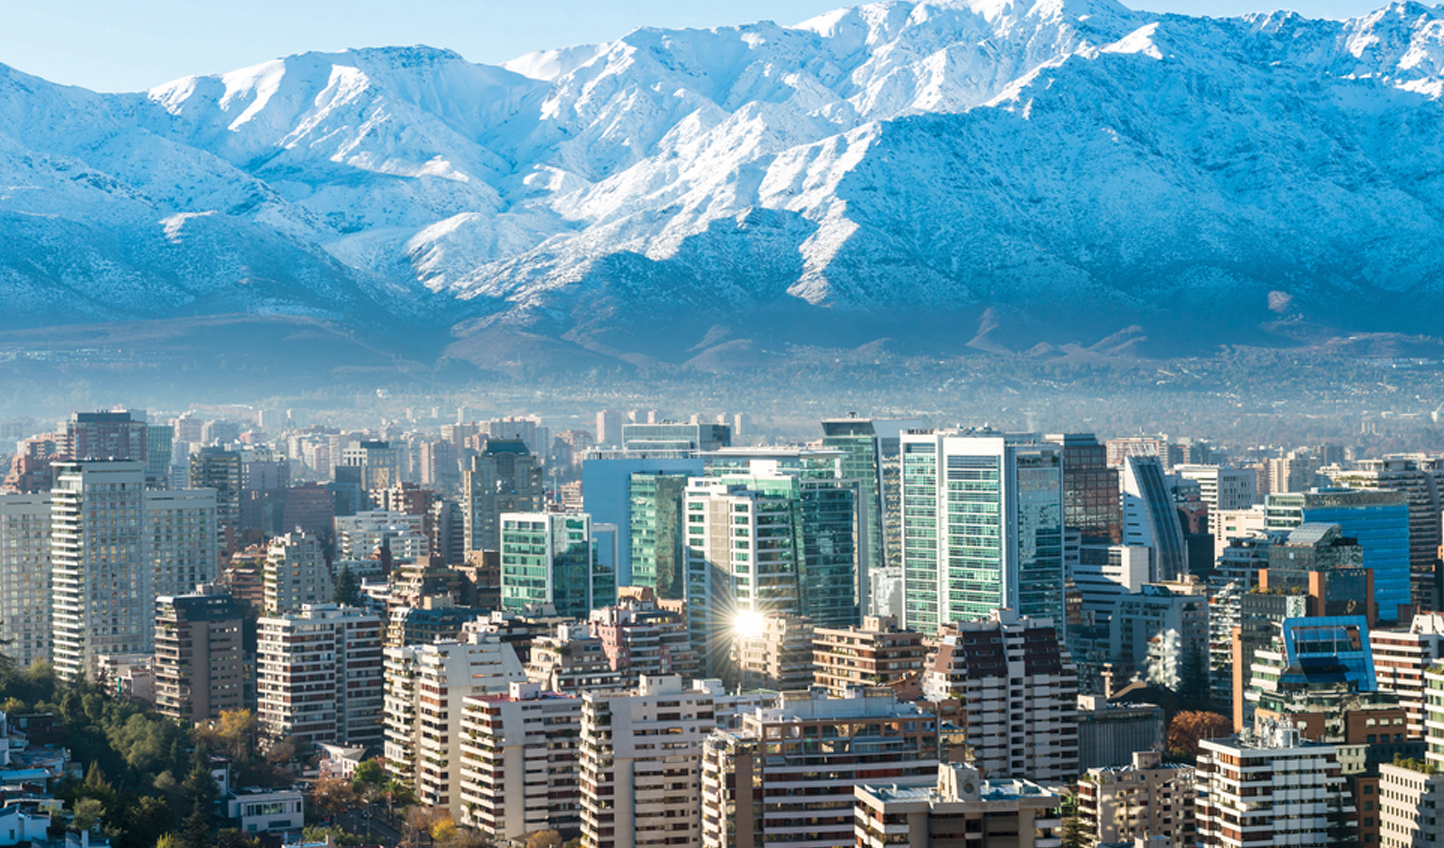 Stunning views of Santiago, your starting location